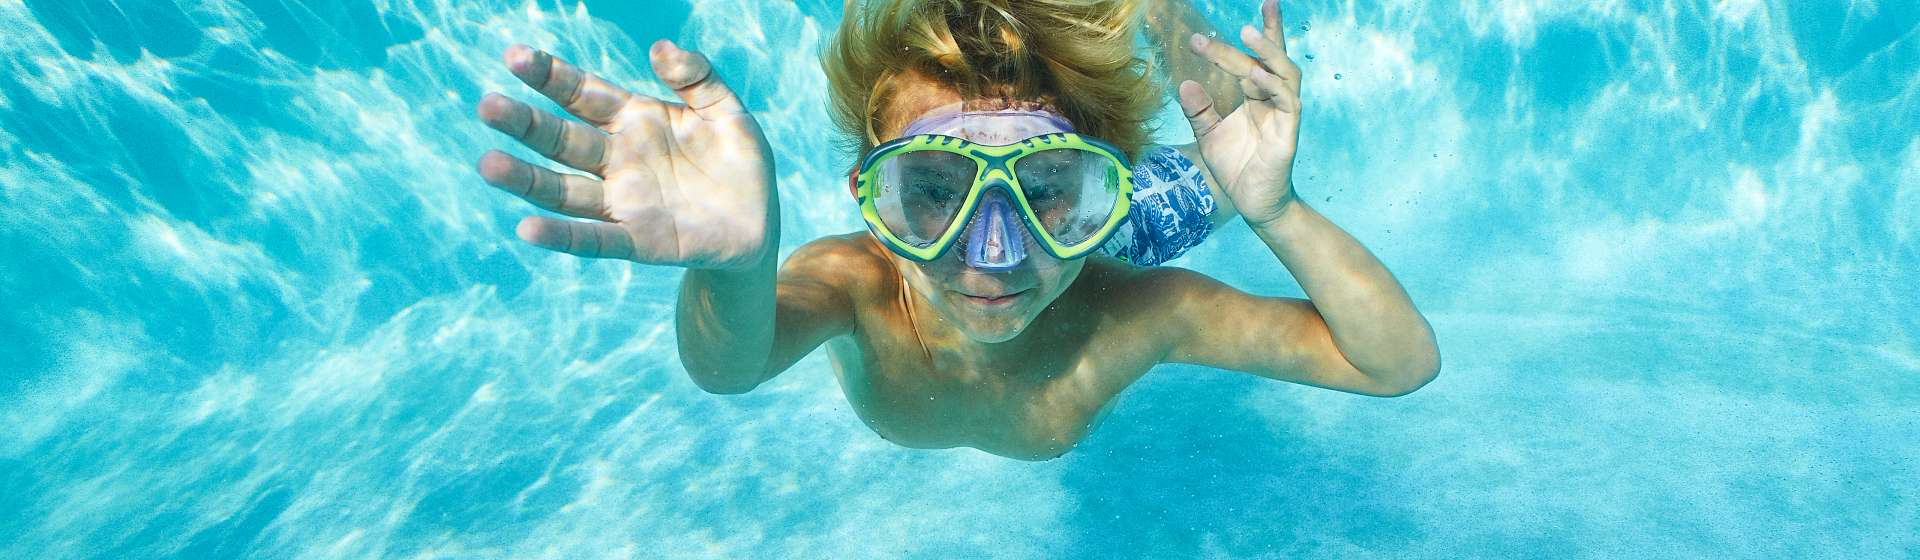 A blonde-haired boy with a snorkeling mask swims underwater in a pool while enjoying a vacation in Orlando.